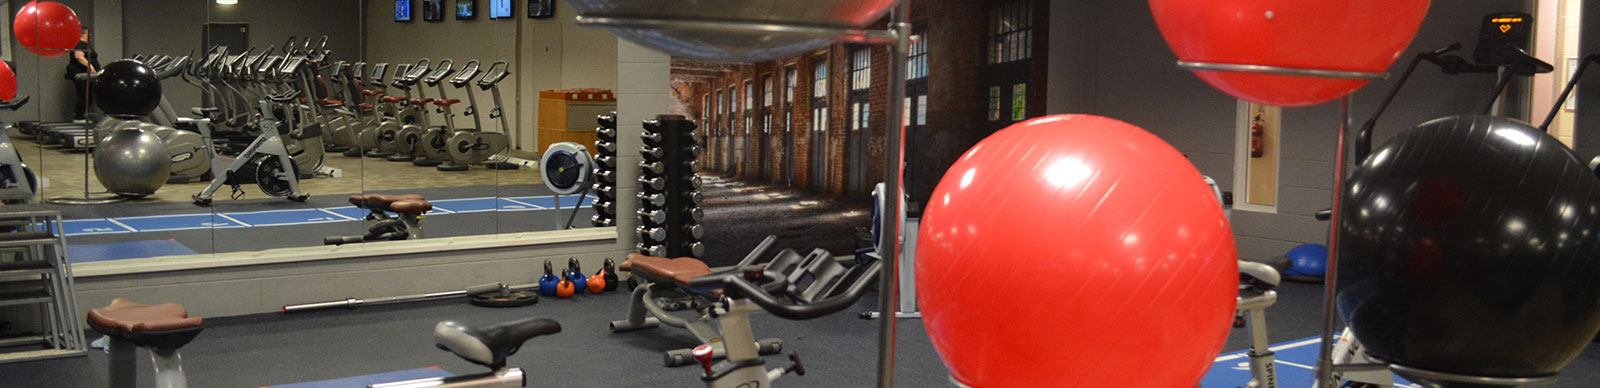 The Oceans gym includes a range of cardio and resistance equipment